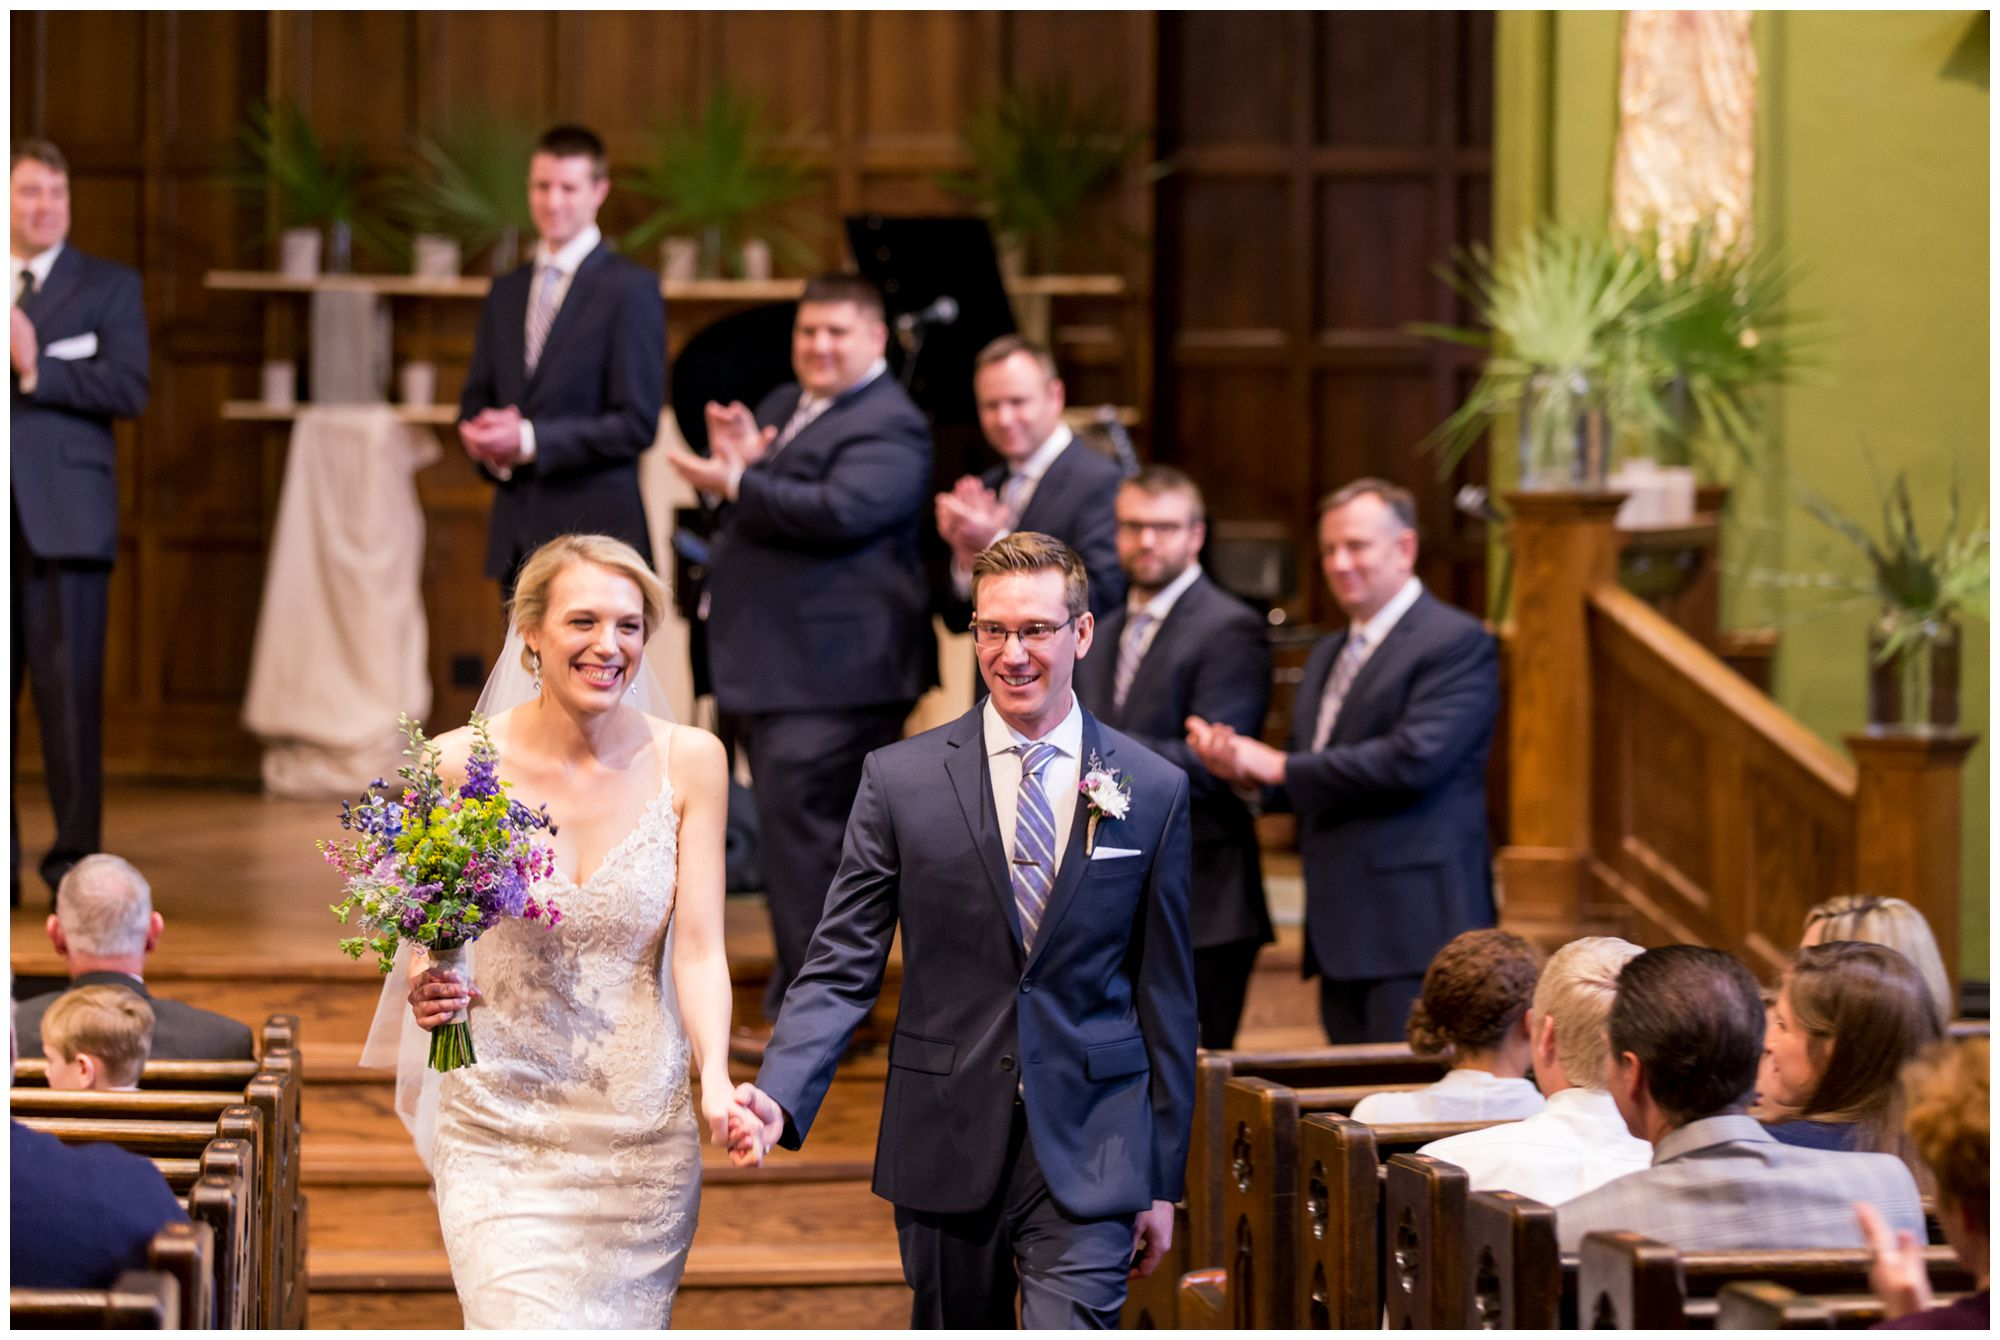 bride and groom leaving wedding ceremony at Redeemer Presbyterian Church in Indianapolis